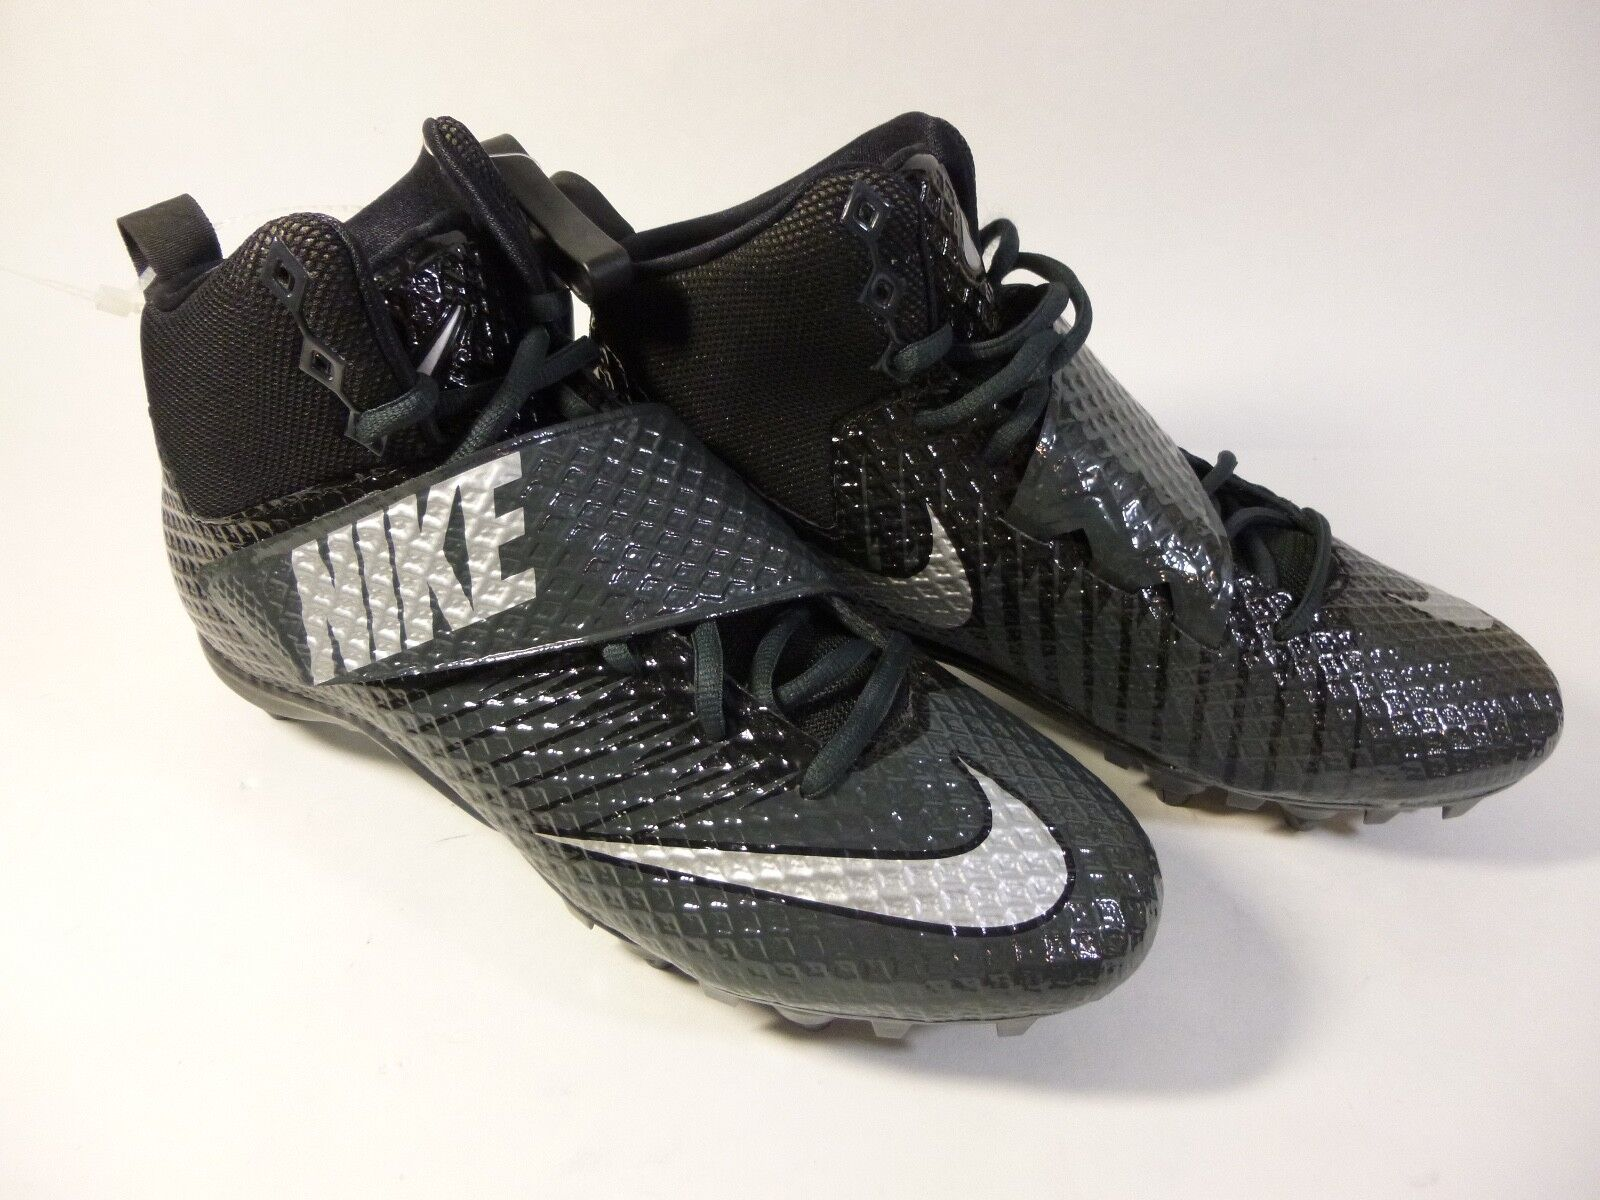 Men's Nike Lunarbeast Strike Pro TD 3 4 Mid 839934-001 Football Cleats Sz 9.5